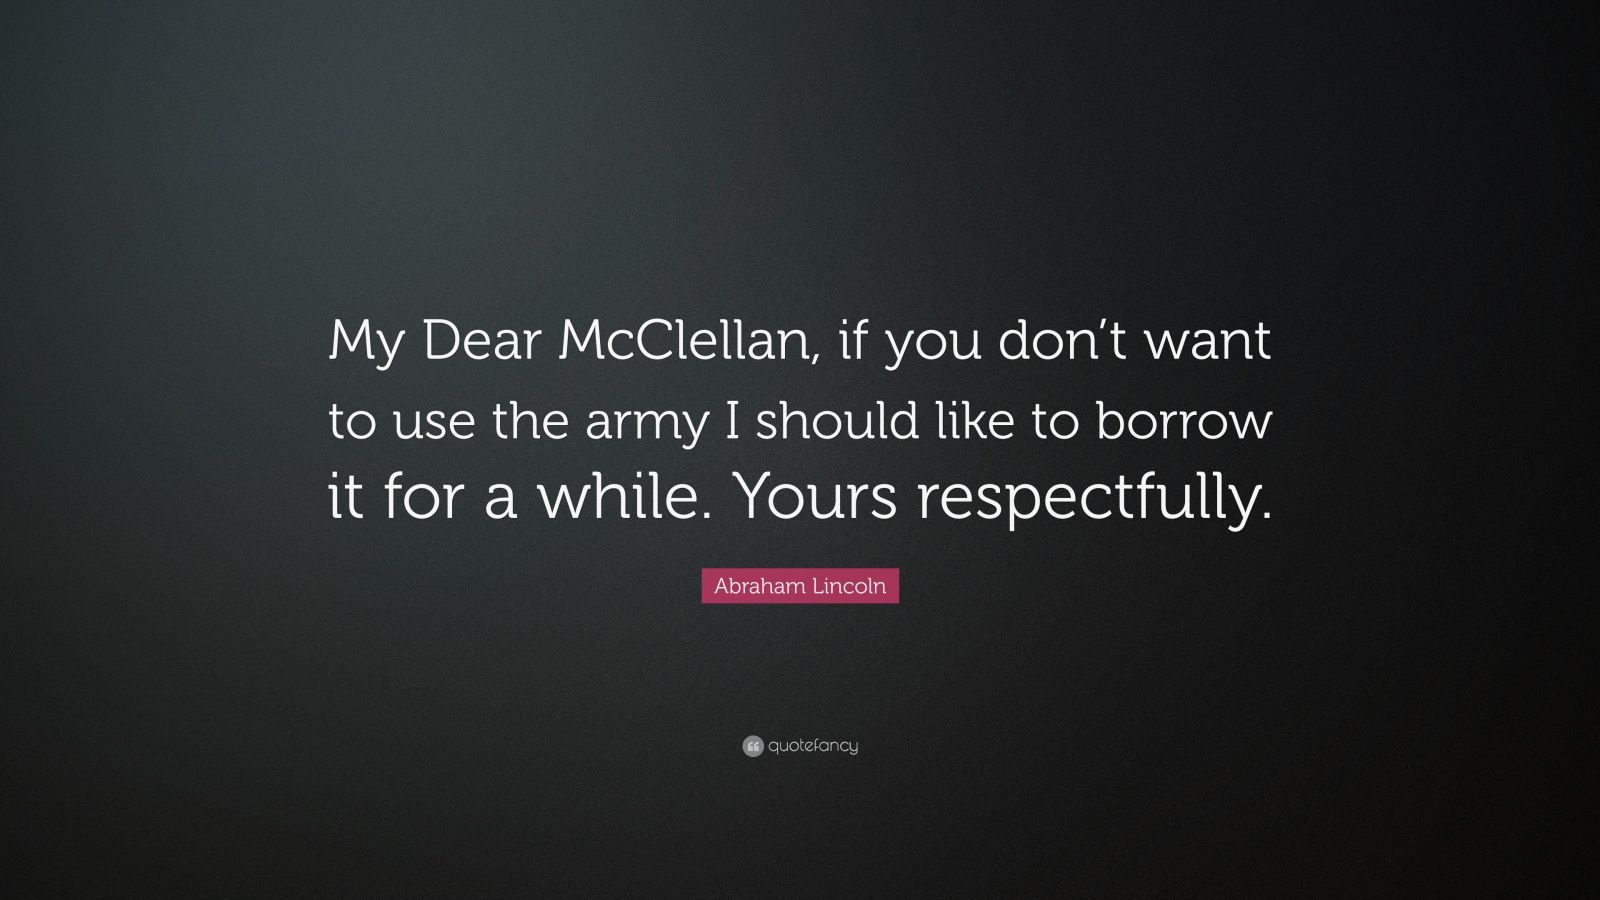 """Abraham Lincoln Quote: """"My Dear McClellan, if you don't want to use the army I should like to borrow it for a while. Yours respectfully."""""""